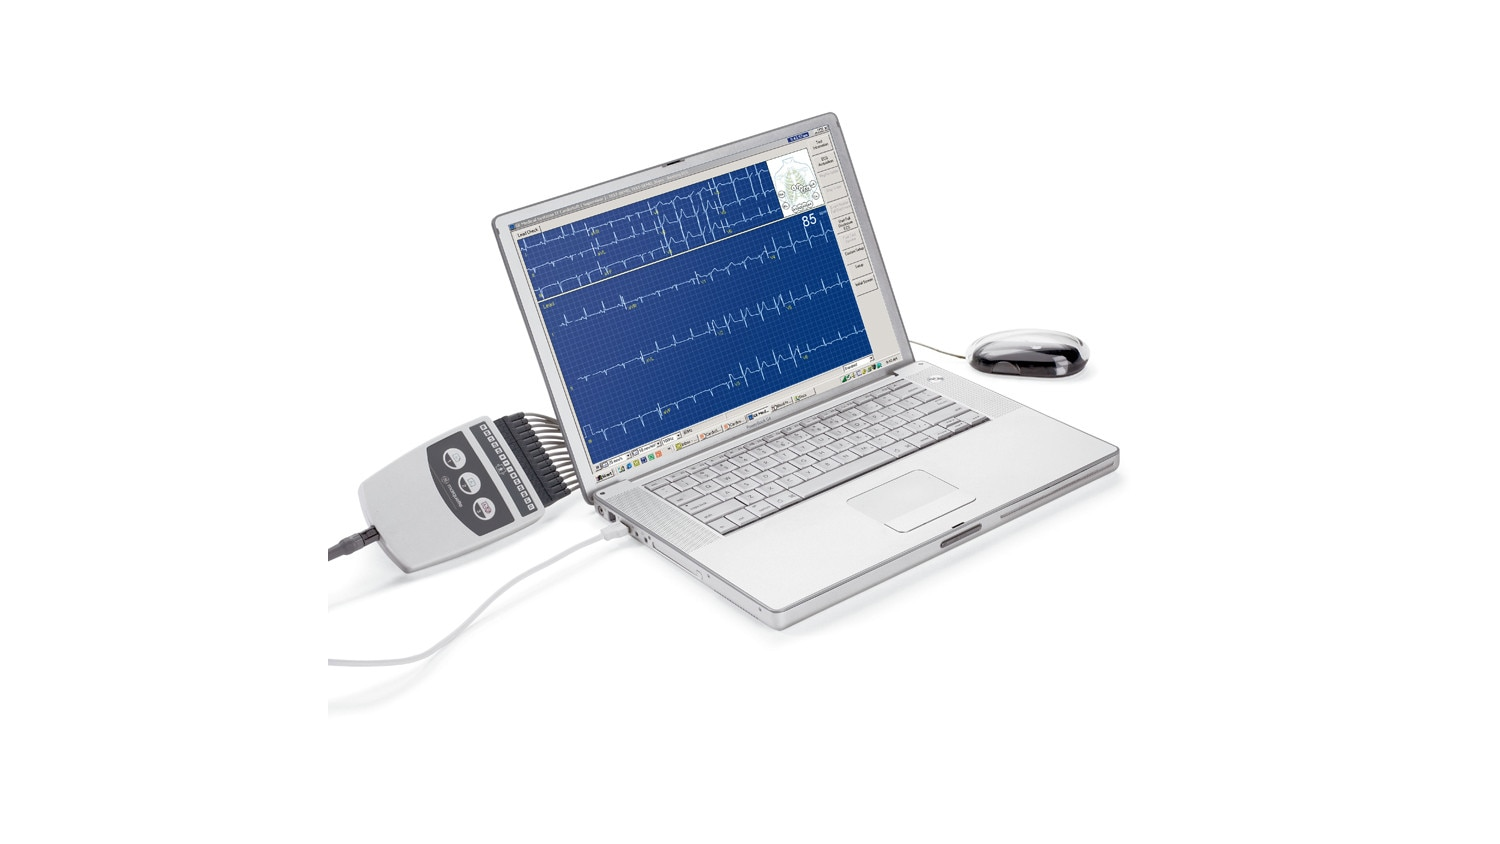 Diagnositc ECG cardiosoft laptop.